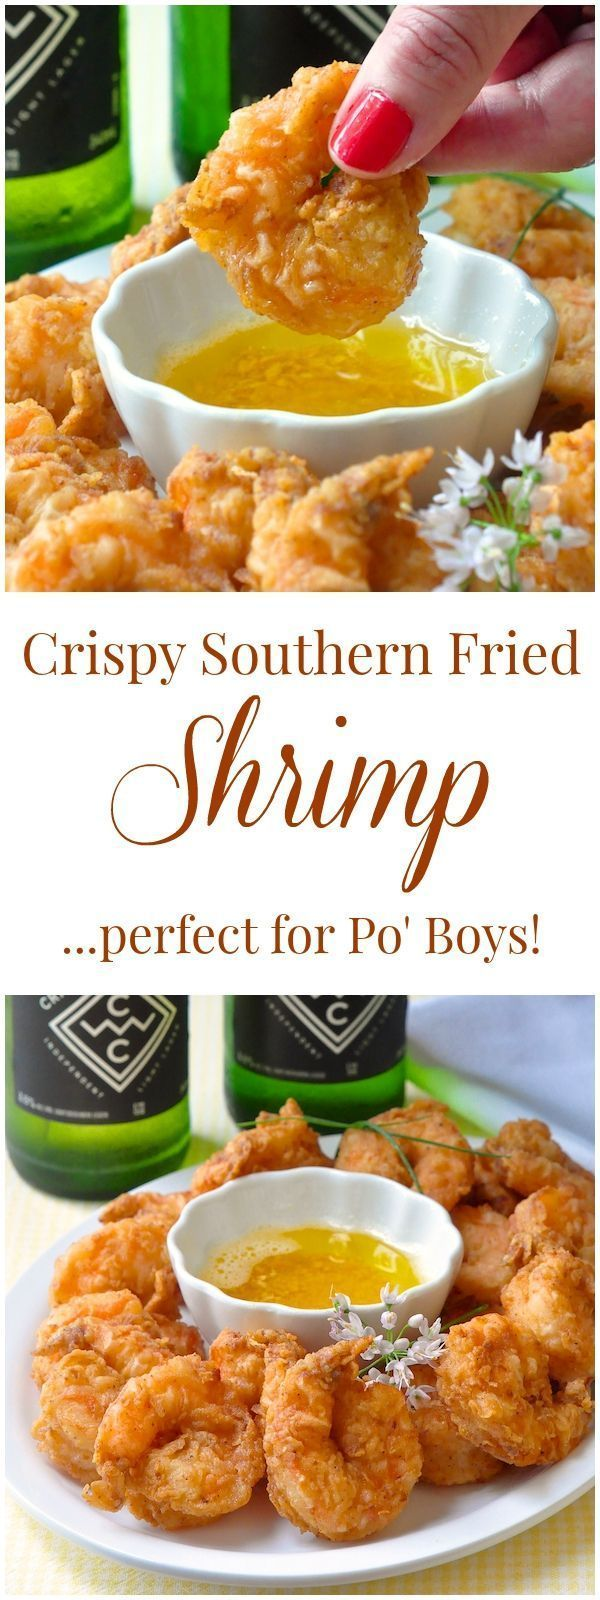 These beautifully seasoned crispy shrimp are very versatile. Have them with oven baked wedge fries for dinner, dipped in garlic butter for party finger food, or piled high in a classic New Orleans Po' Boy Sandwich. Super fast and super easy, you'll make t